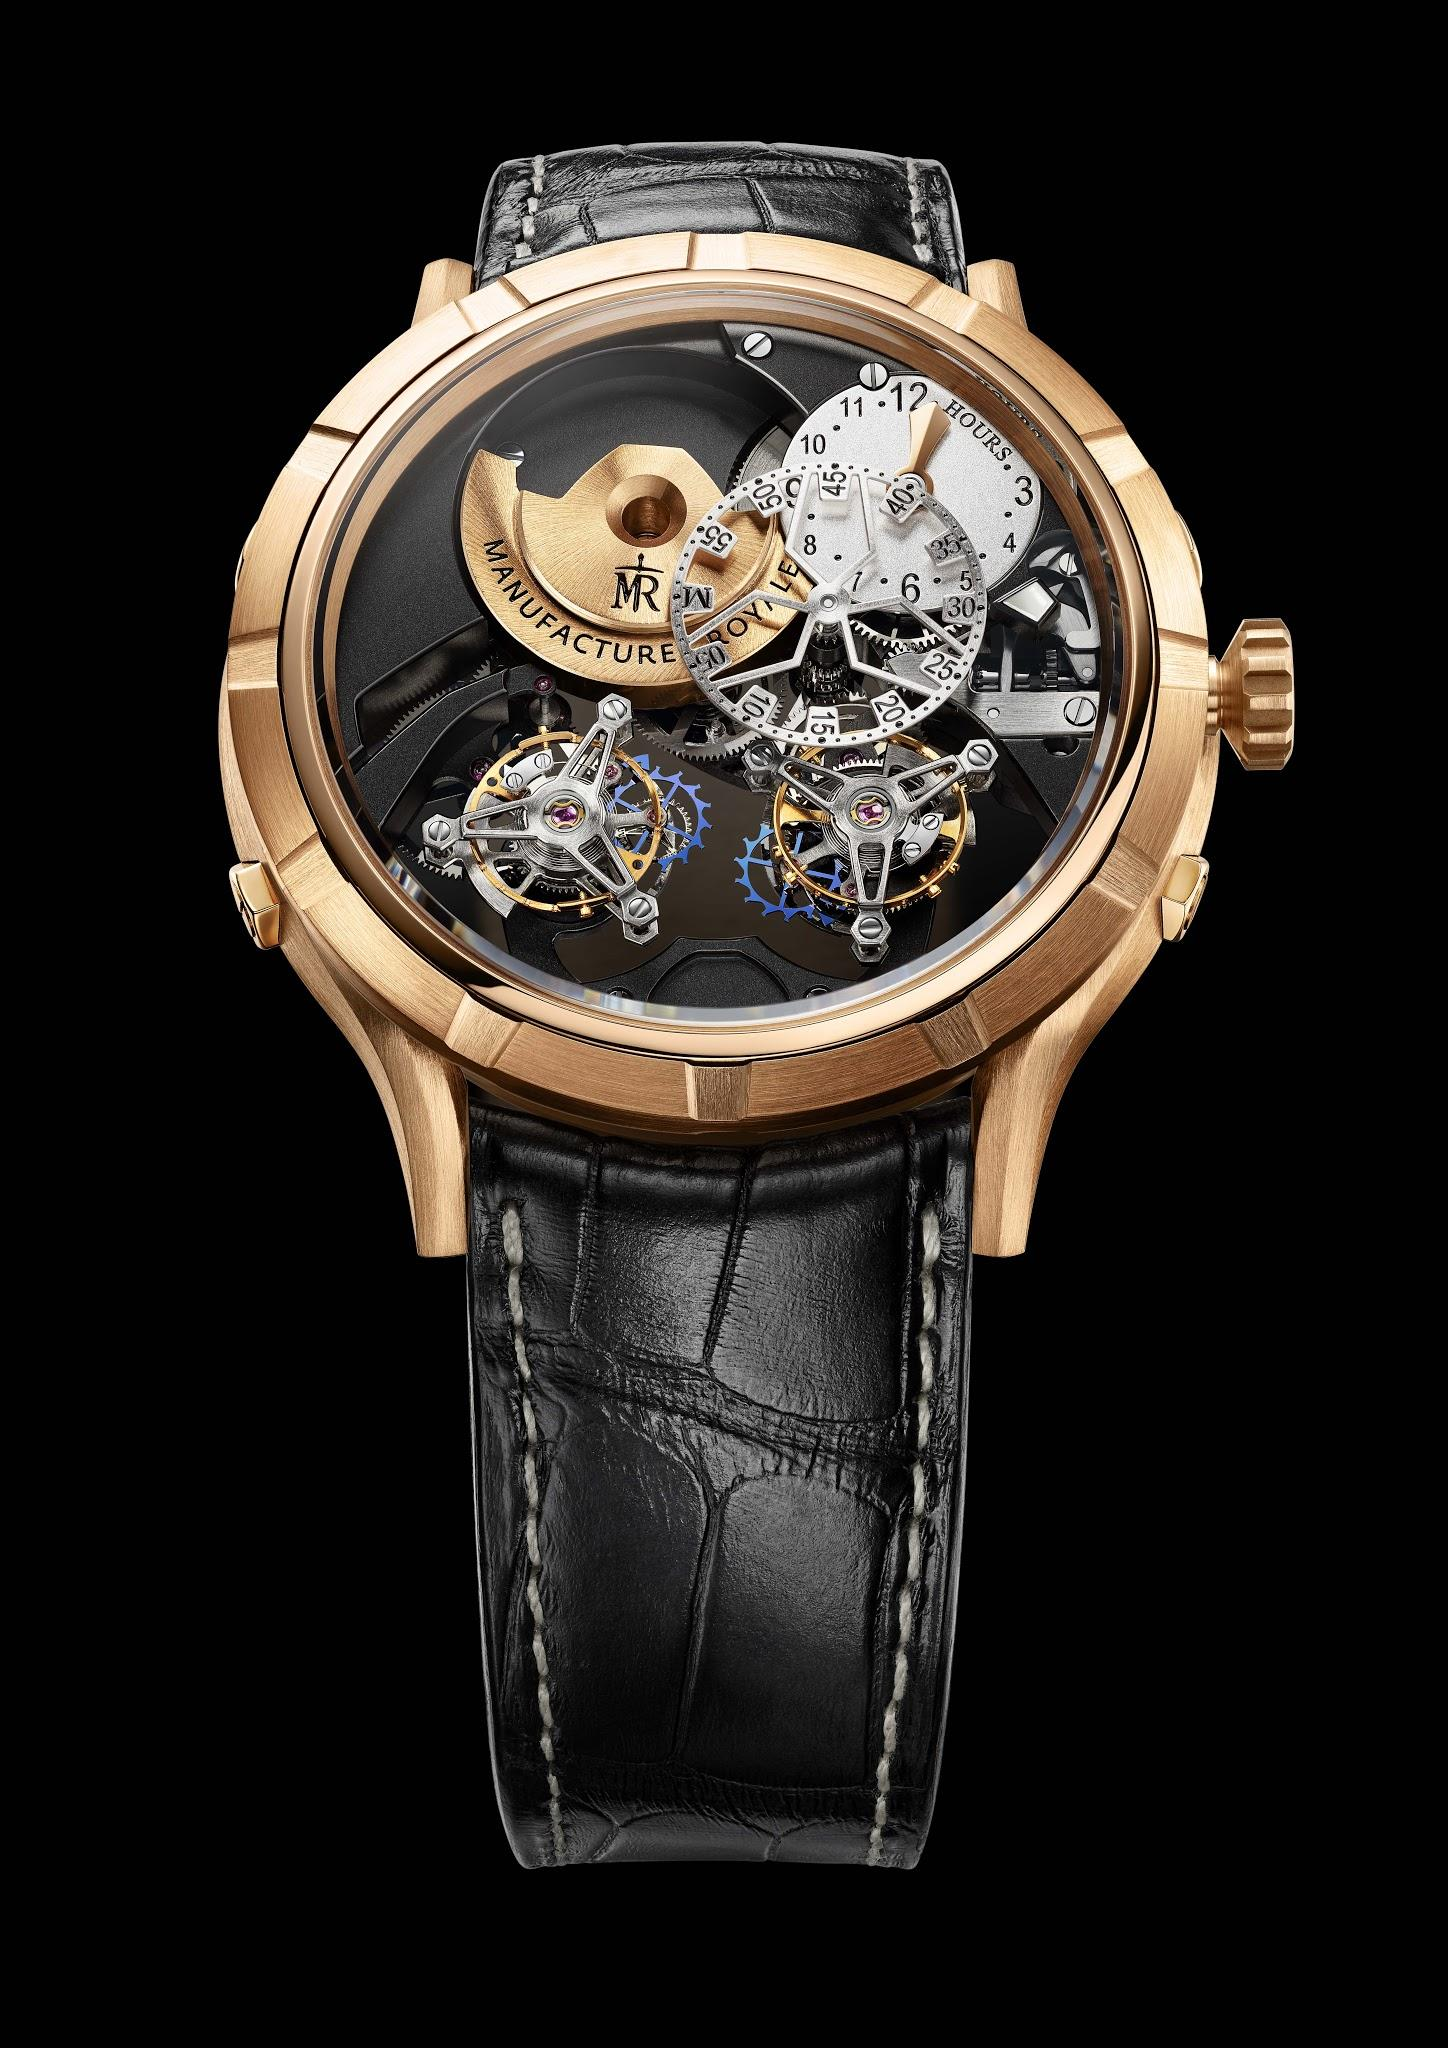 The new Manufacture Royale 1770 Micromegas Revolution